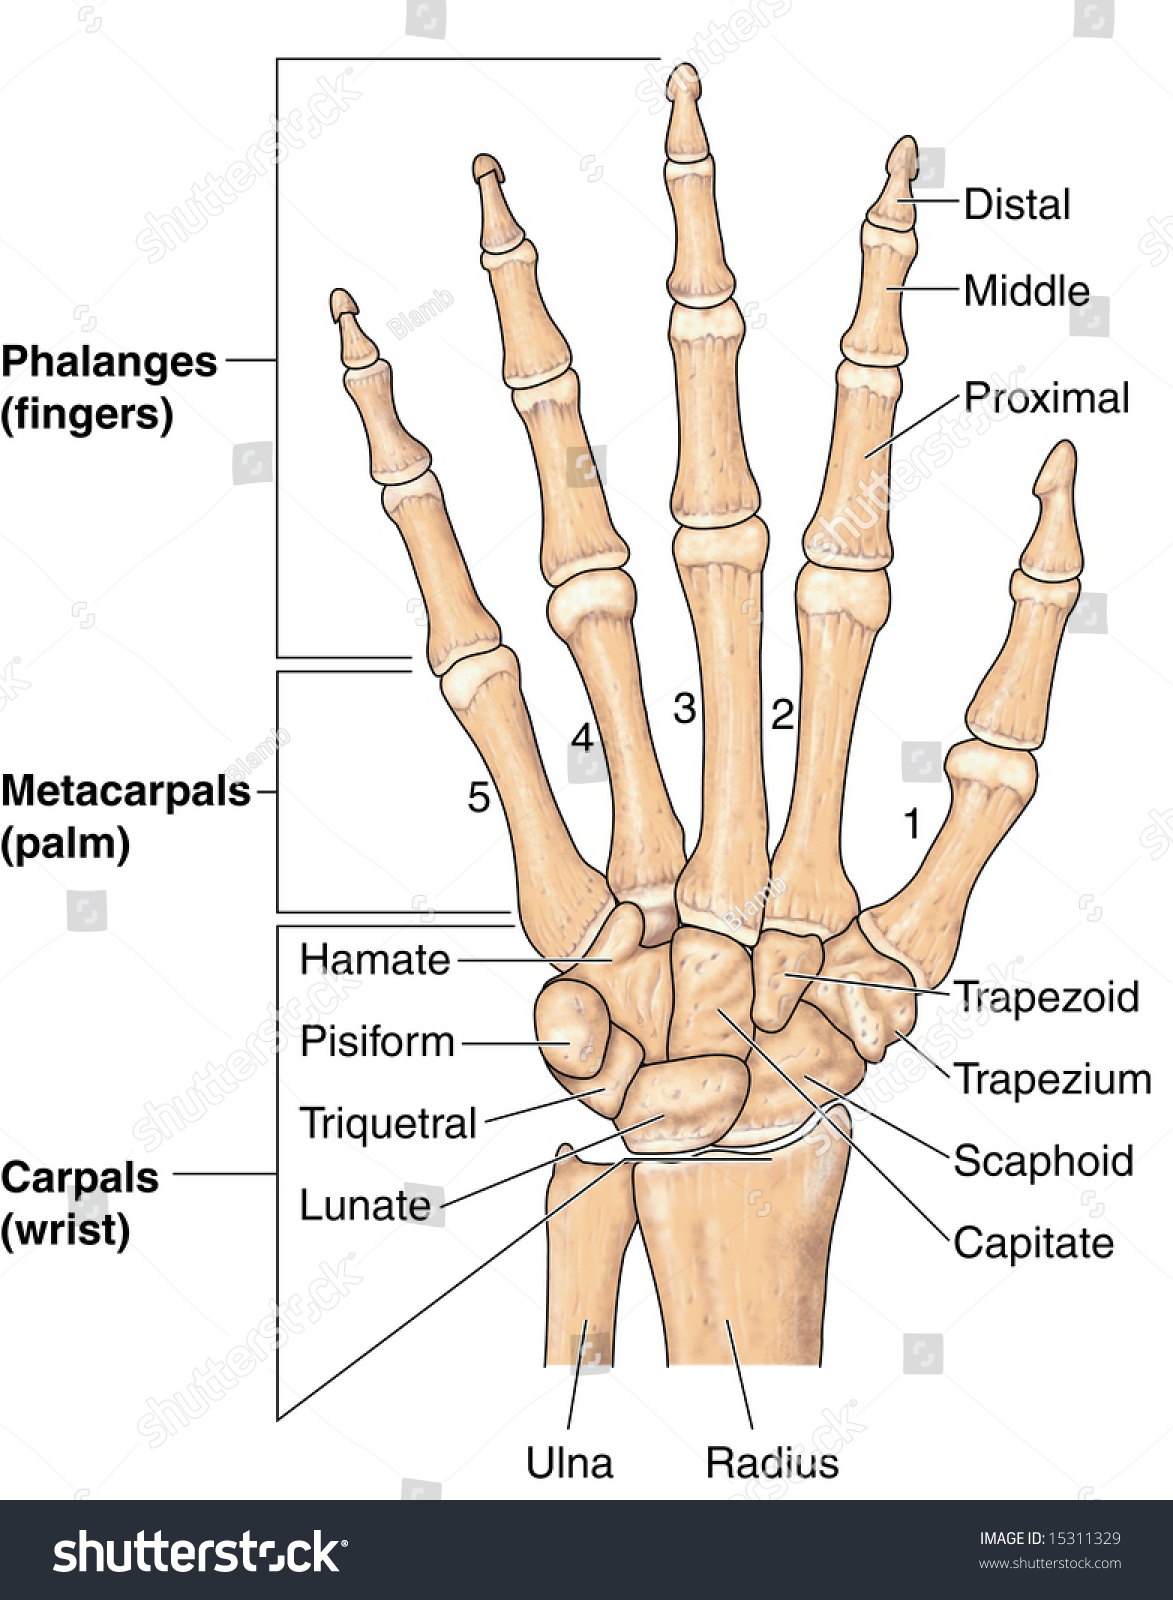 human hand bones labeled stock illustration 15311329 - shutterstock, Skeleton